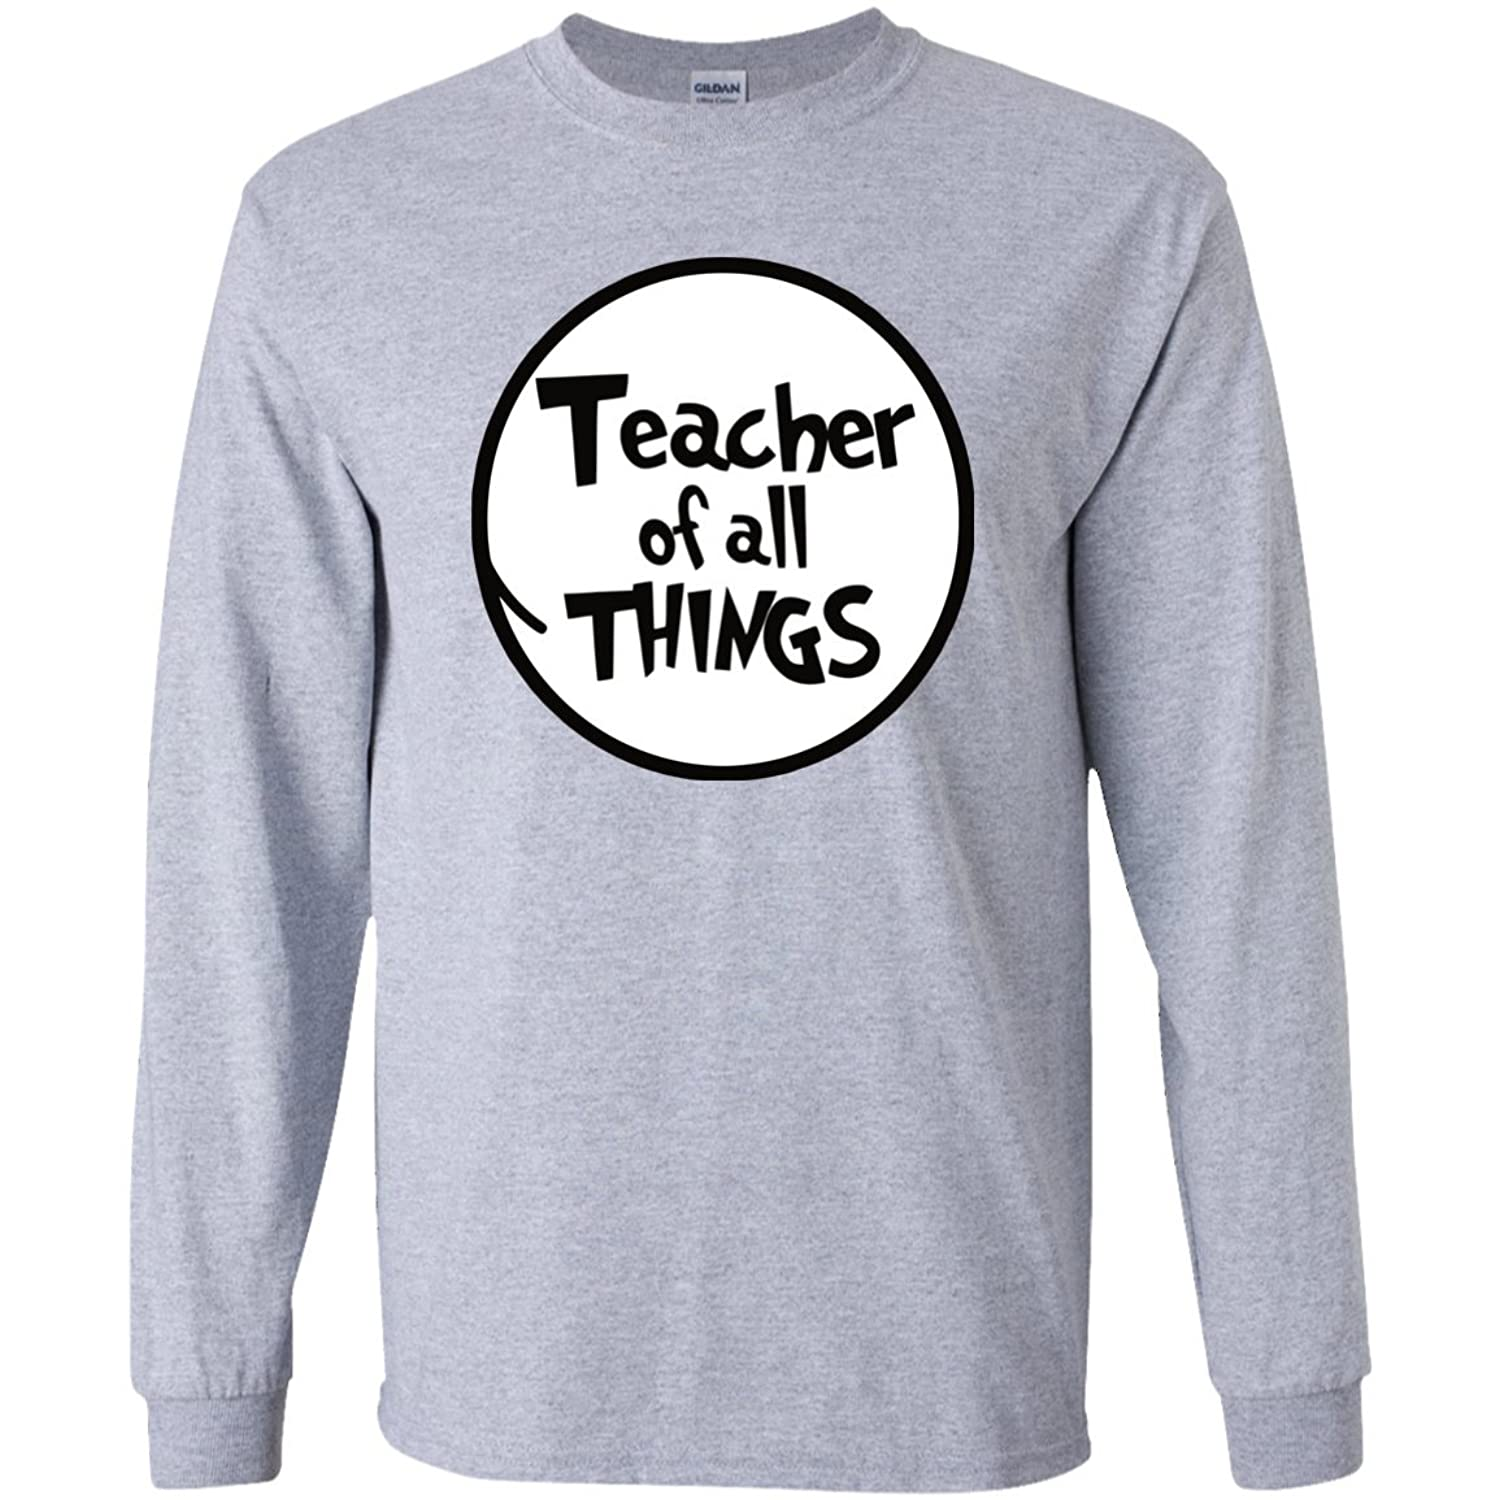 Long Sleeve Teacher of all Things